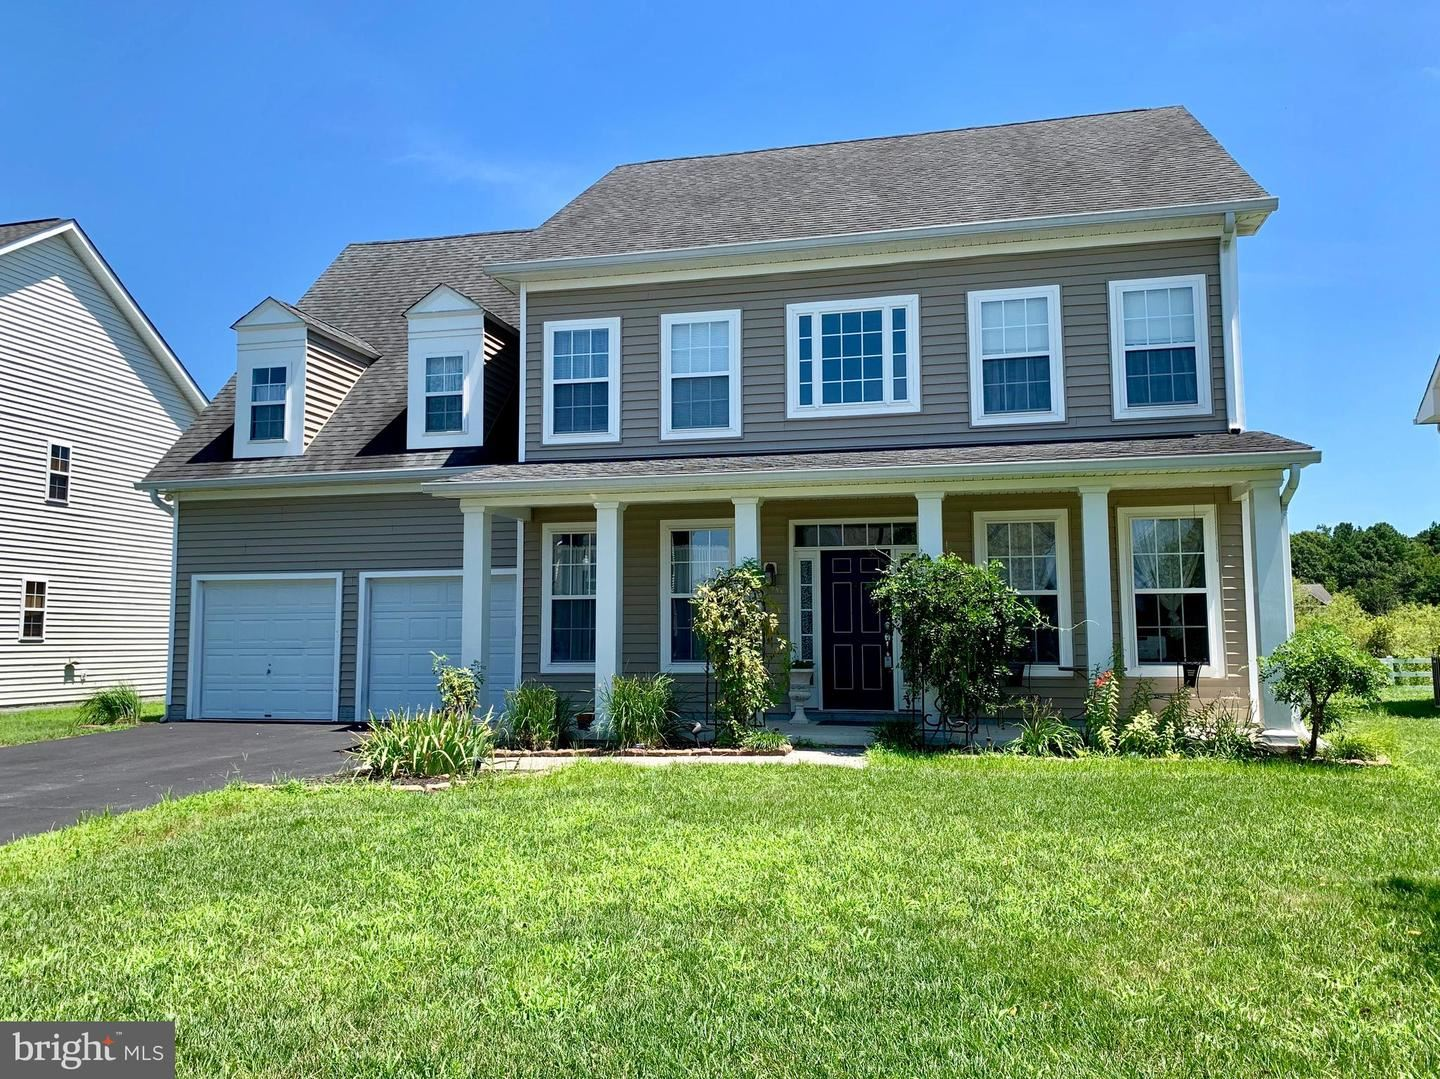 Photo for 119 TEAL LN, CAMBRIDGE, MD 21613 (MLS # MDDO123870)